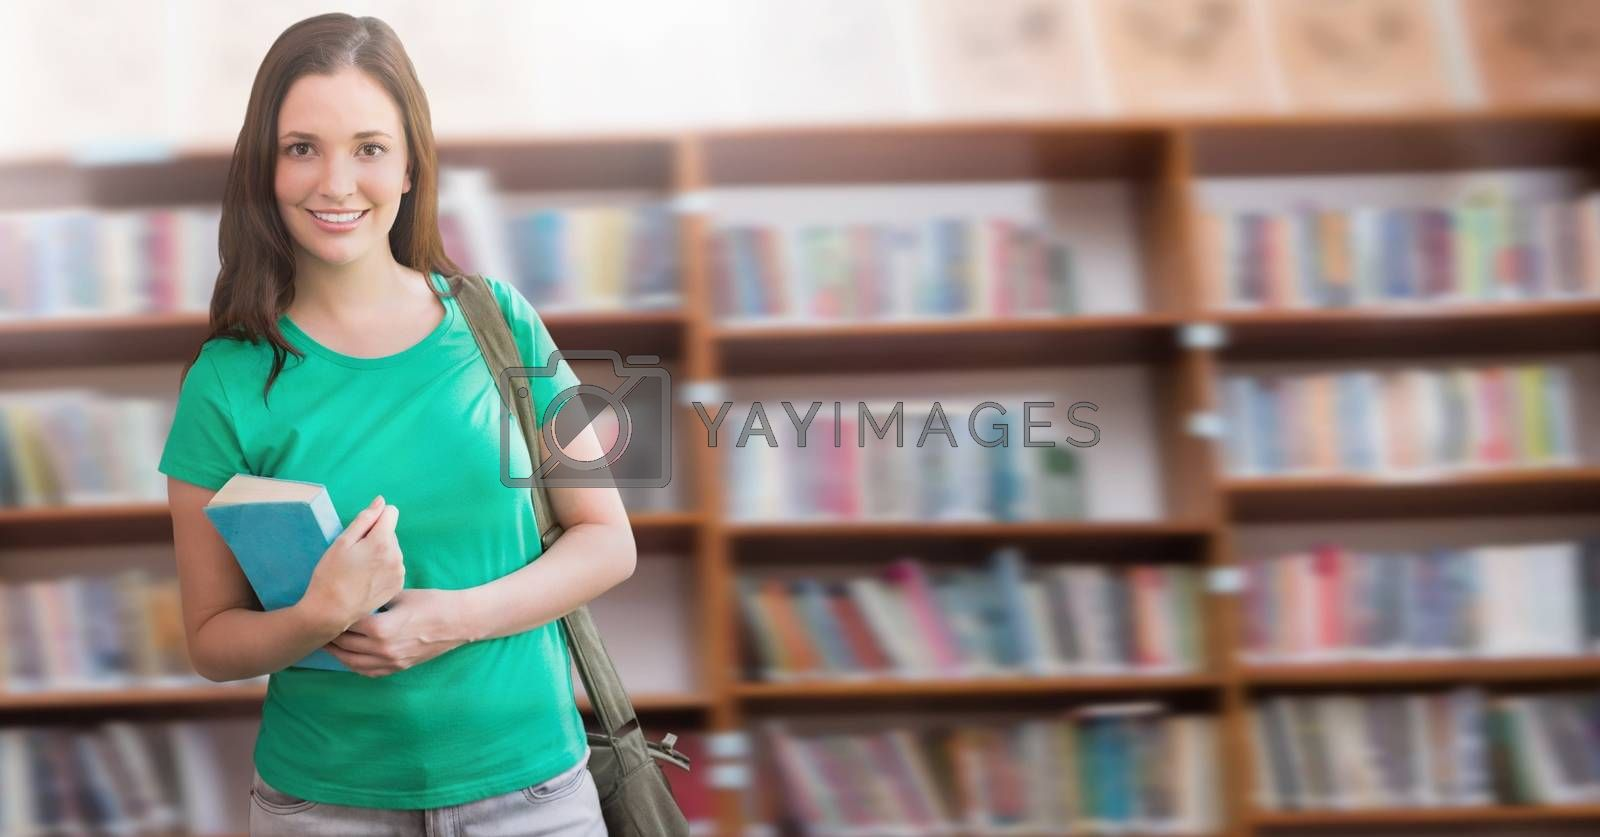 Digital composite of Student girl in education library